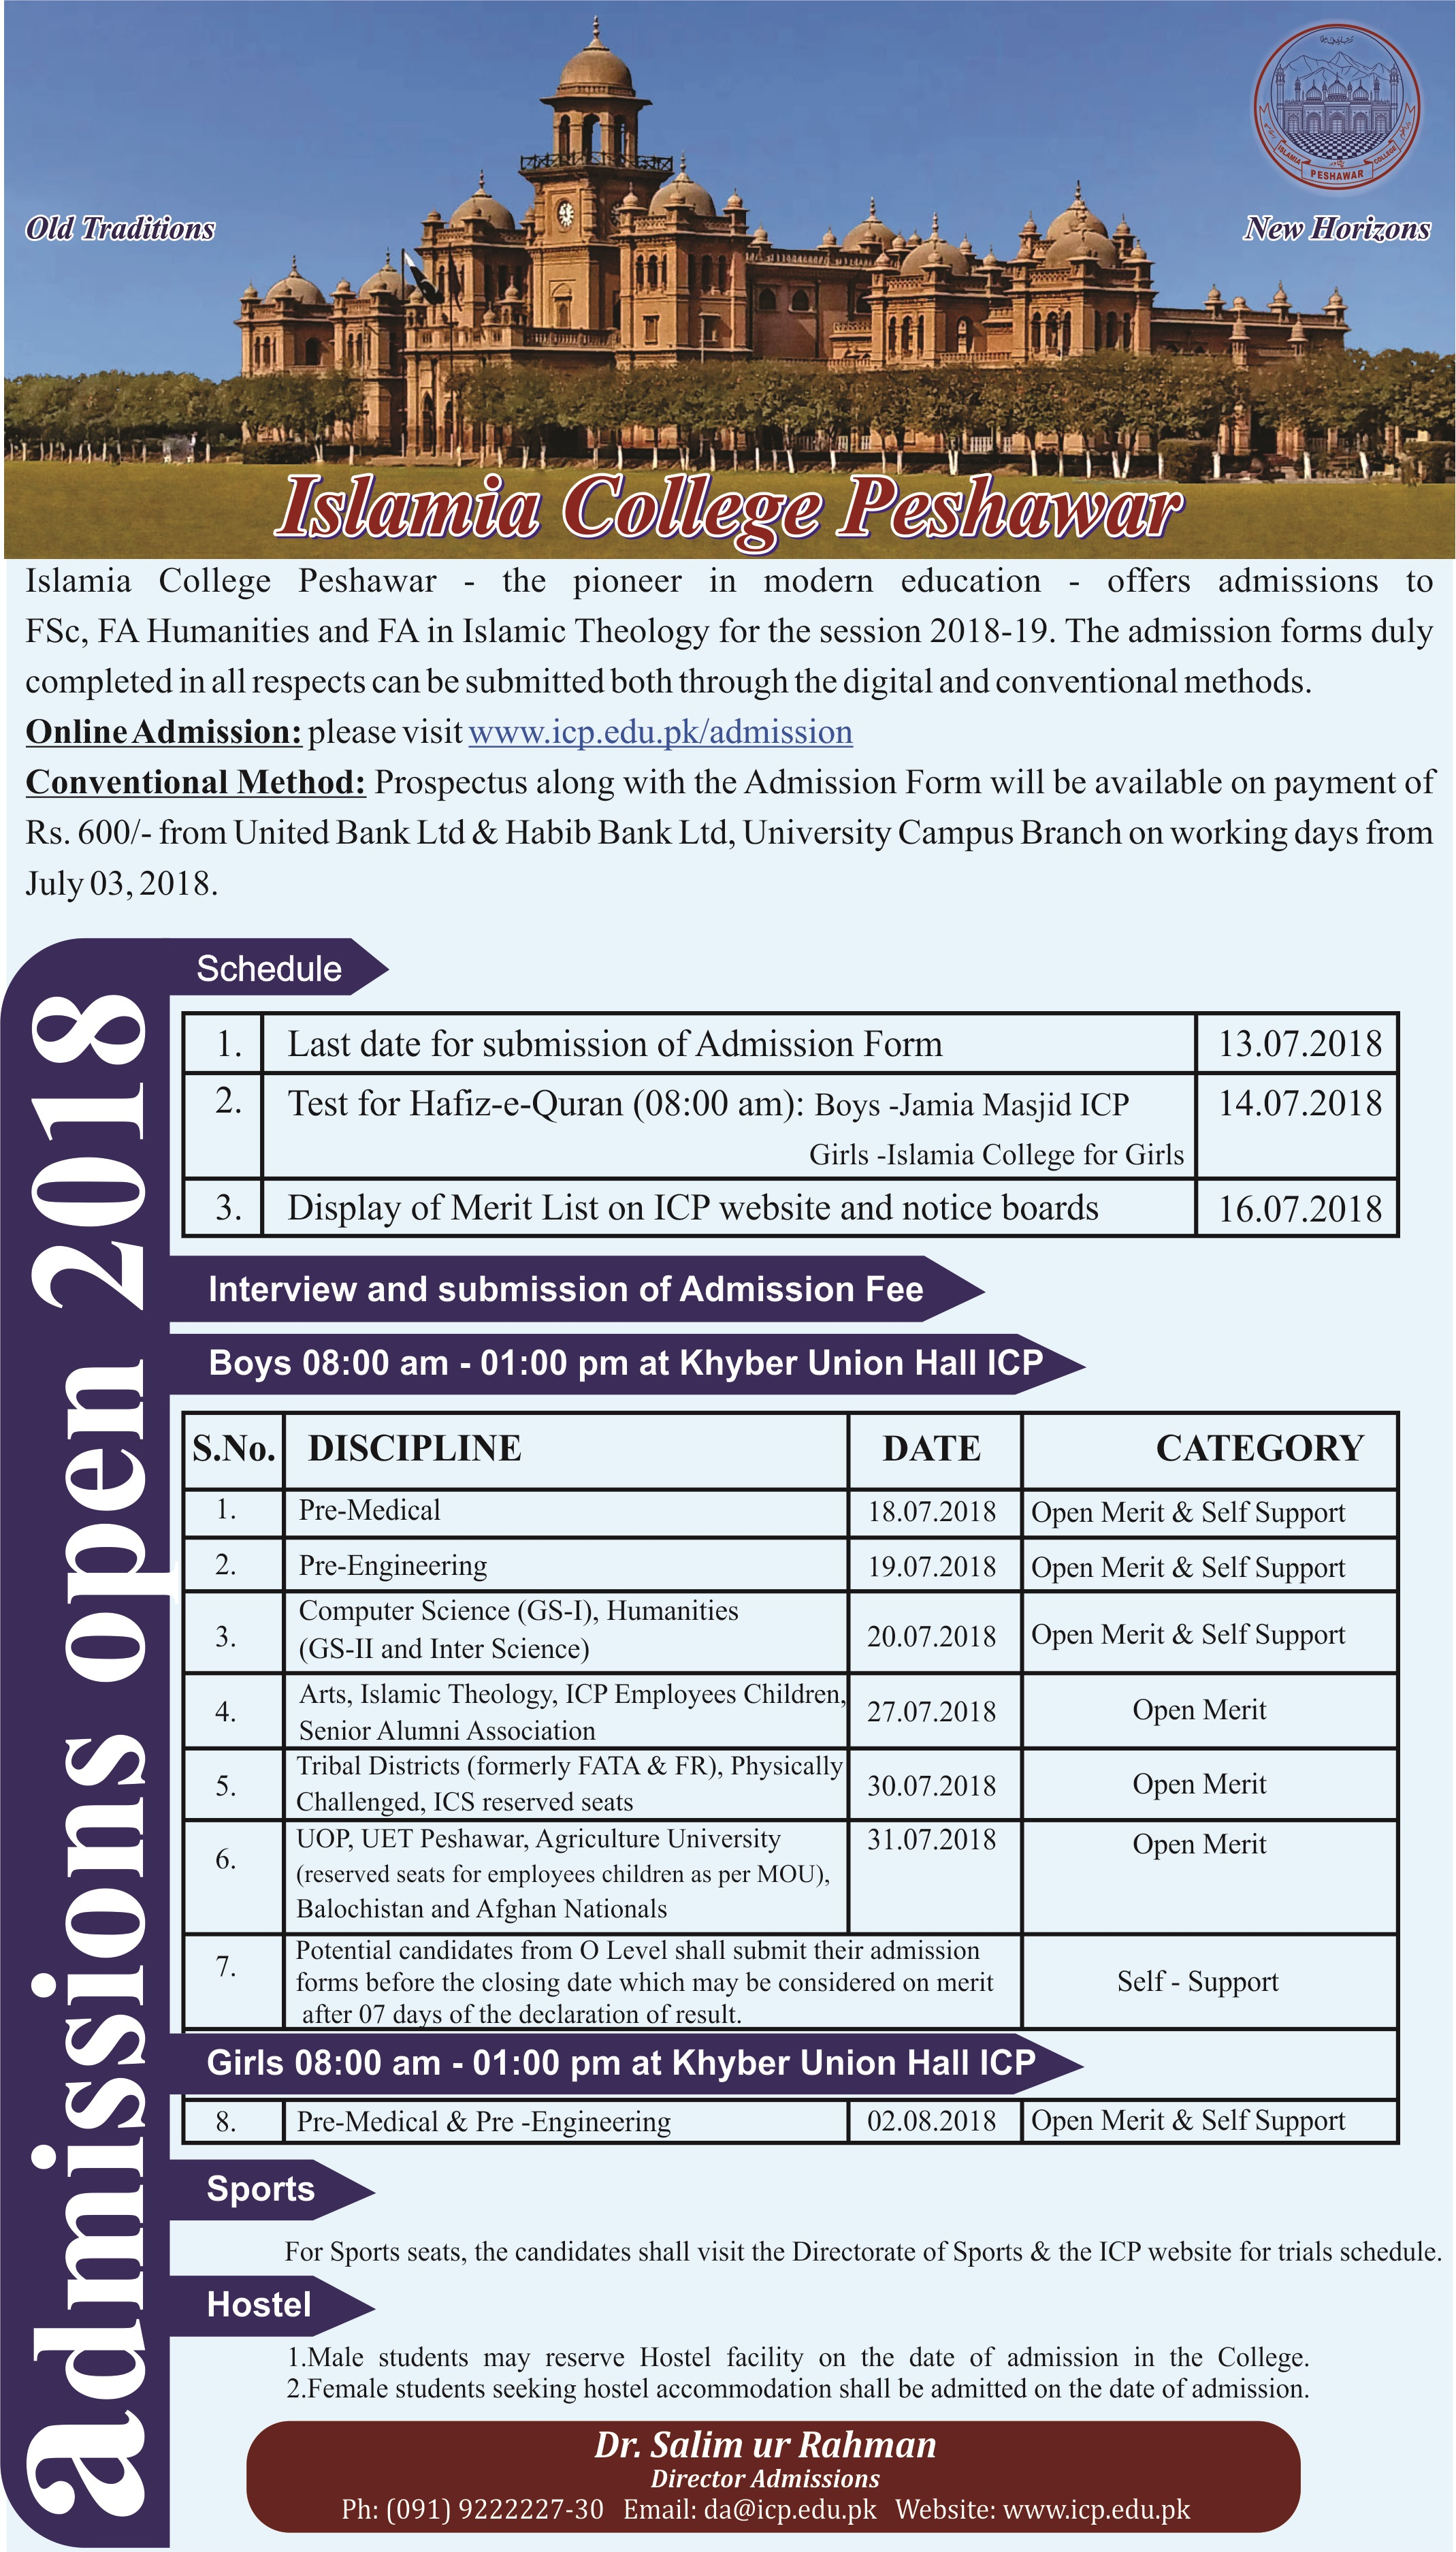 Islamia College Peshawar Admission 2018 Form, Merit list